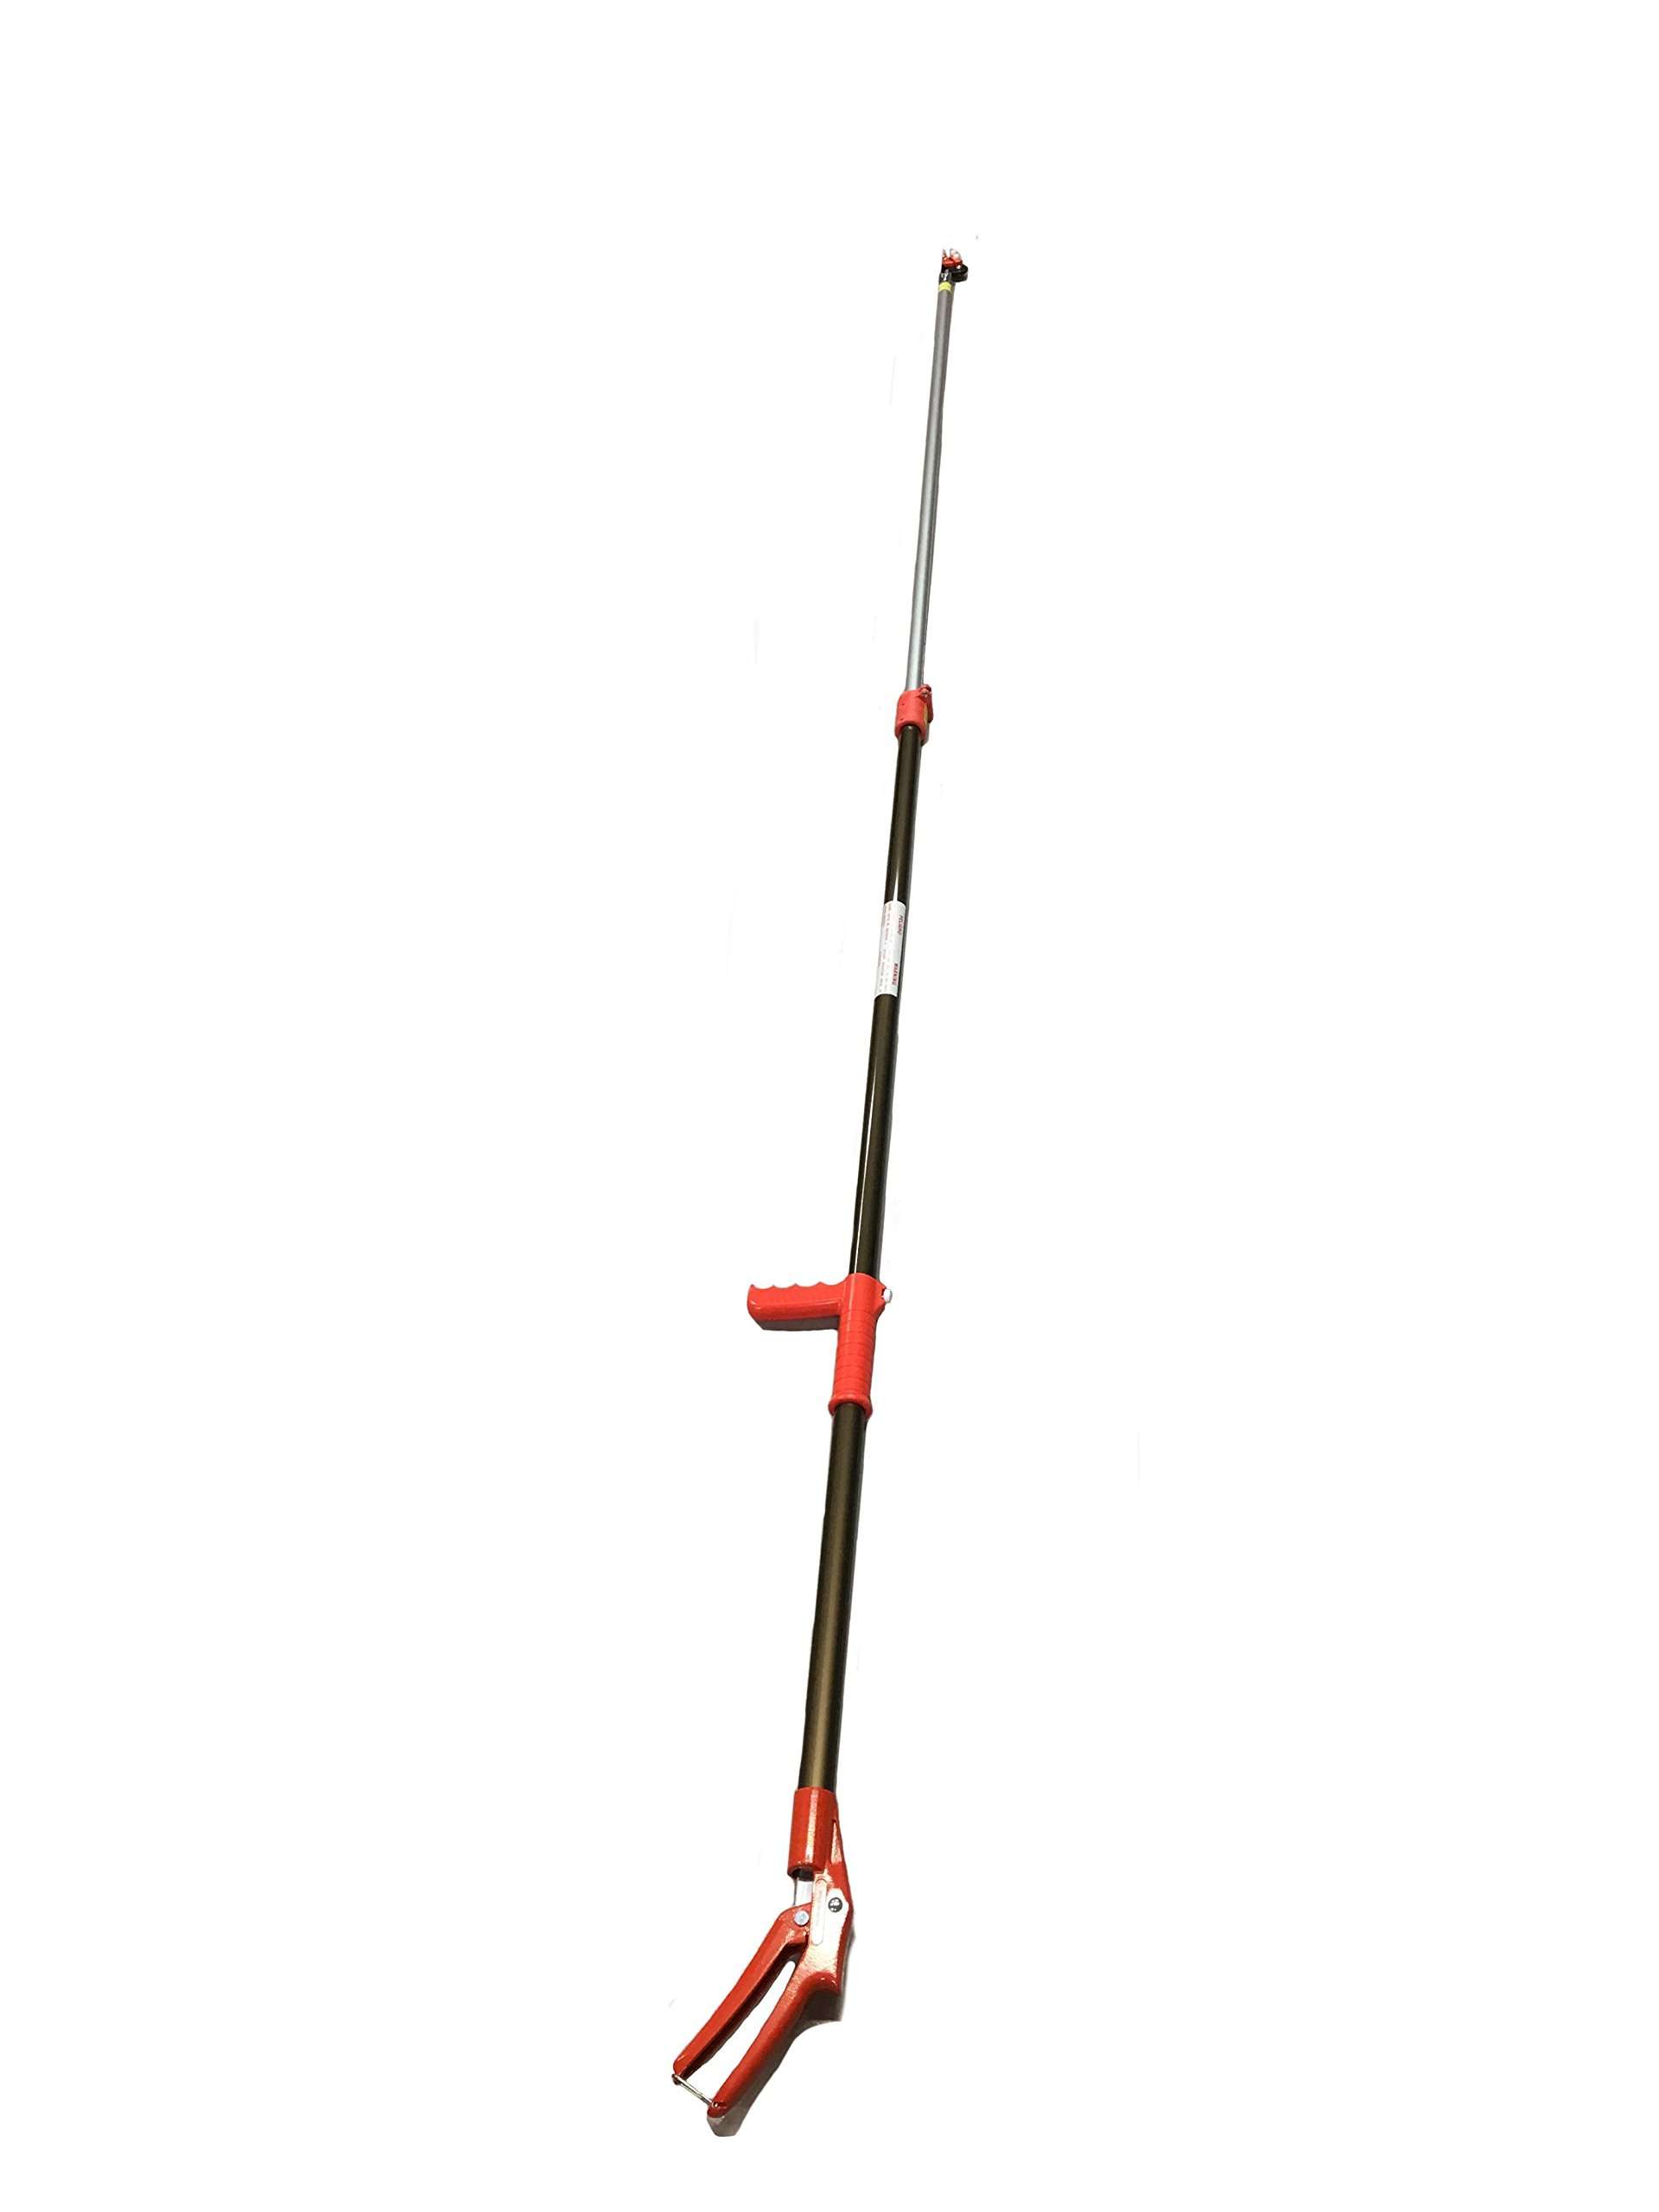 Nobi Telescopic Long Reach Pruner With Pruning Saw Ext 50'' to 79'' Made In Japan by Single Cylinder Repair